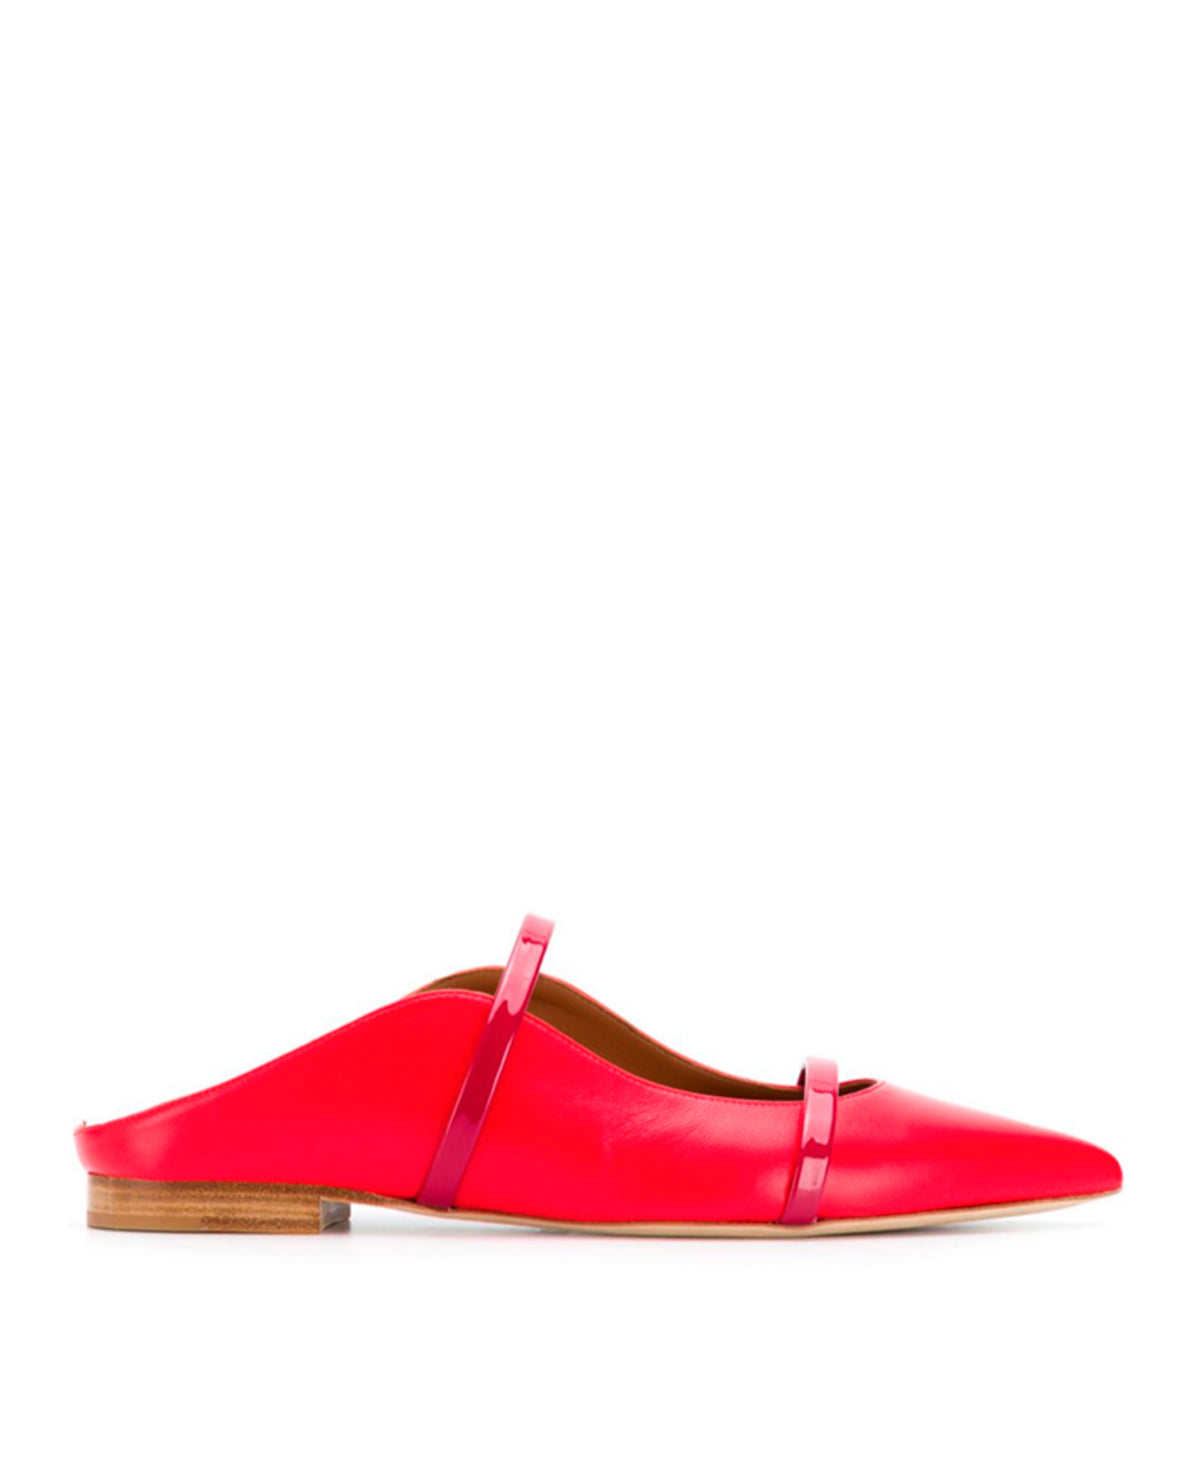 MAUREEN FLAT - Red Nappa Burgundy Patent